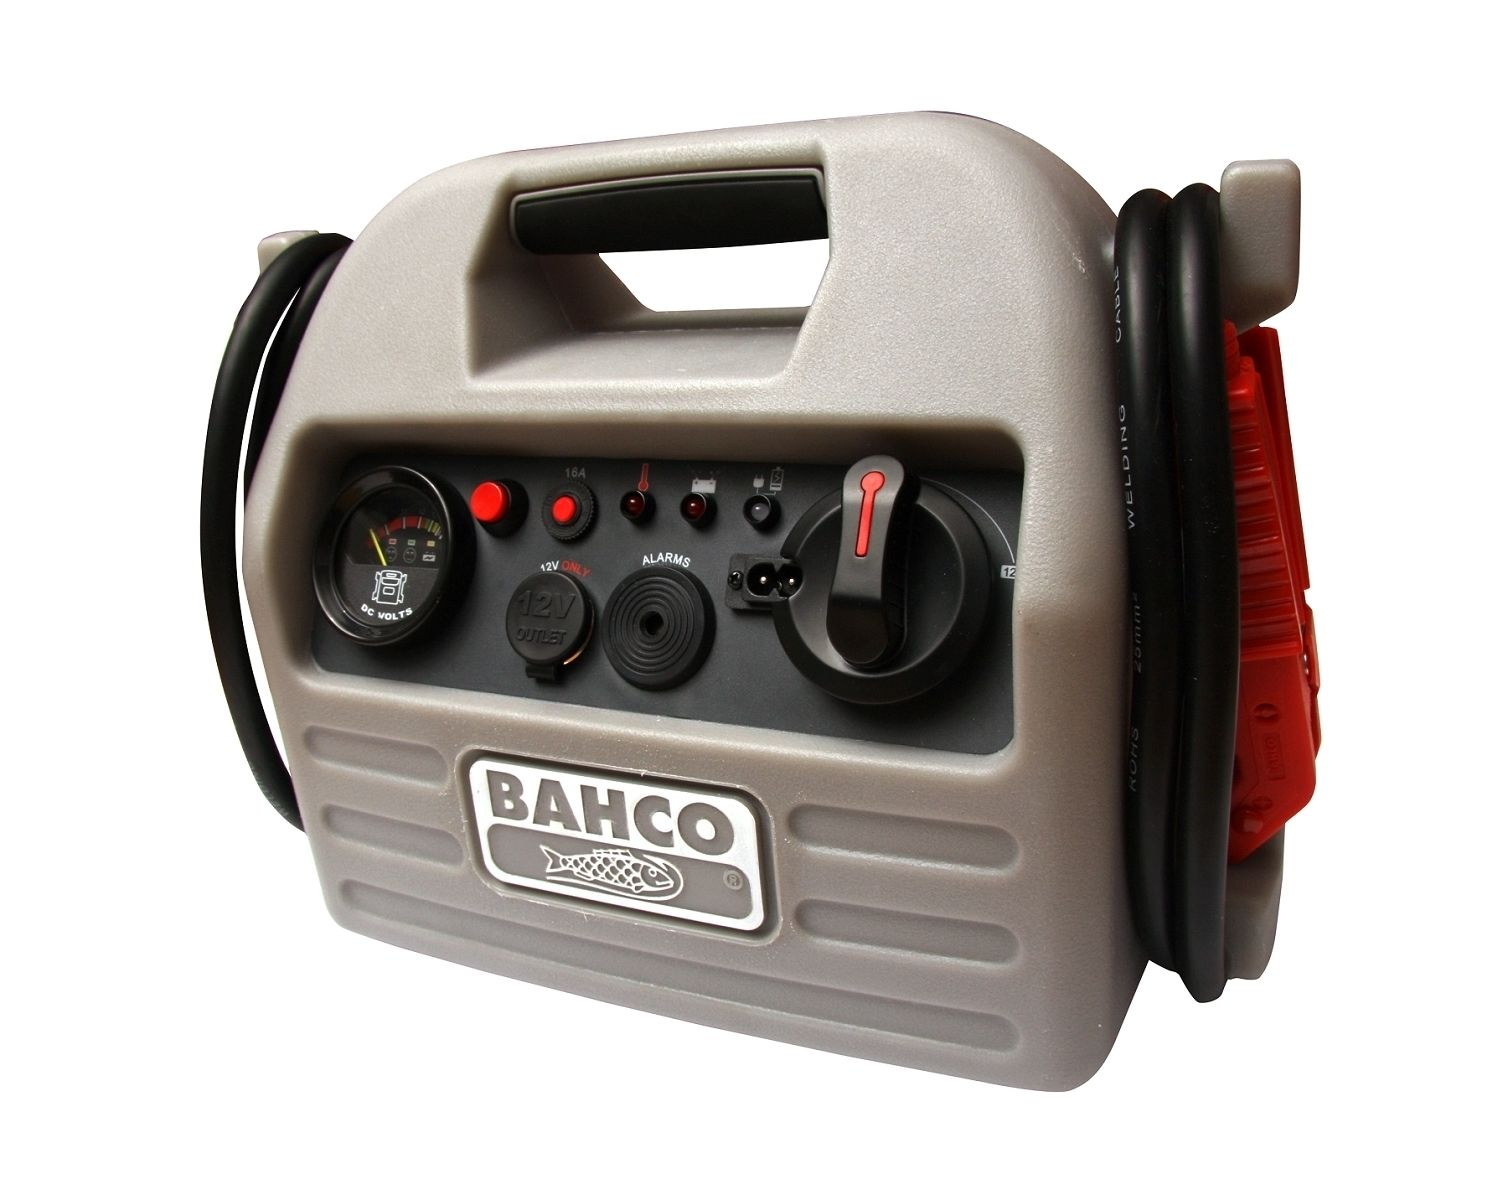 Bahco Auto Start Booster